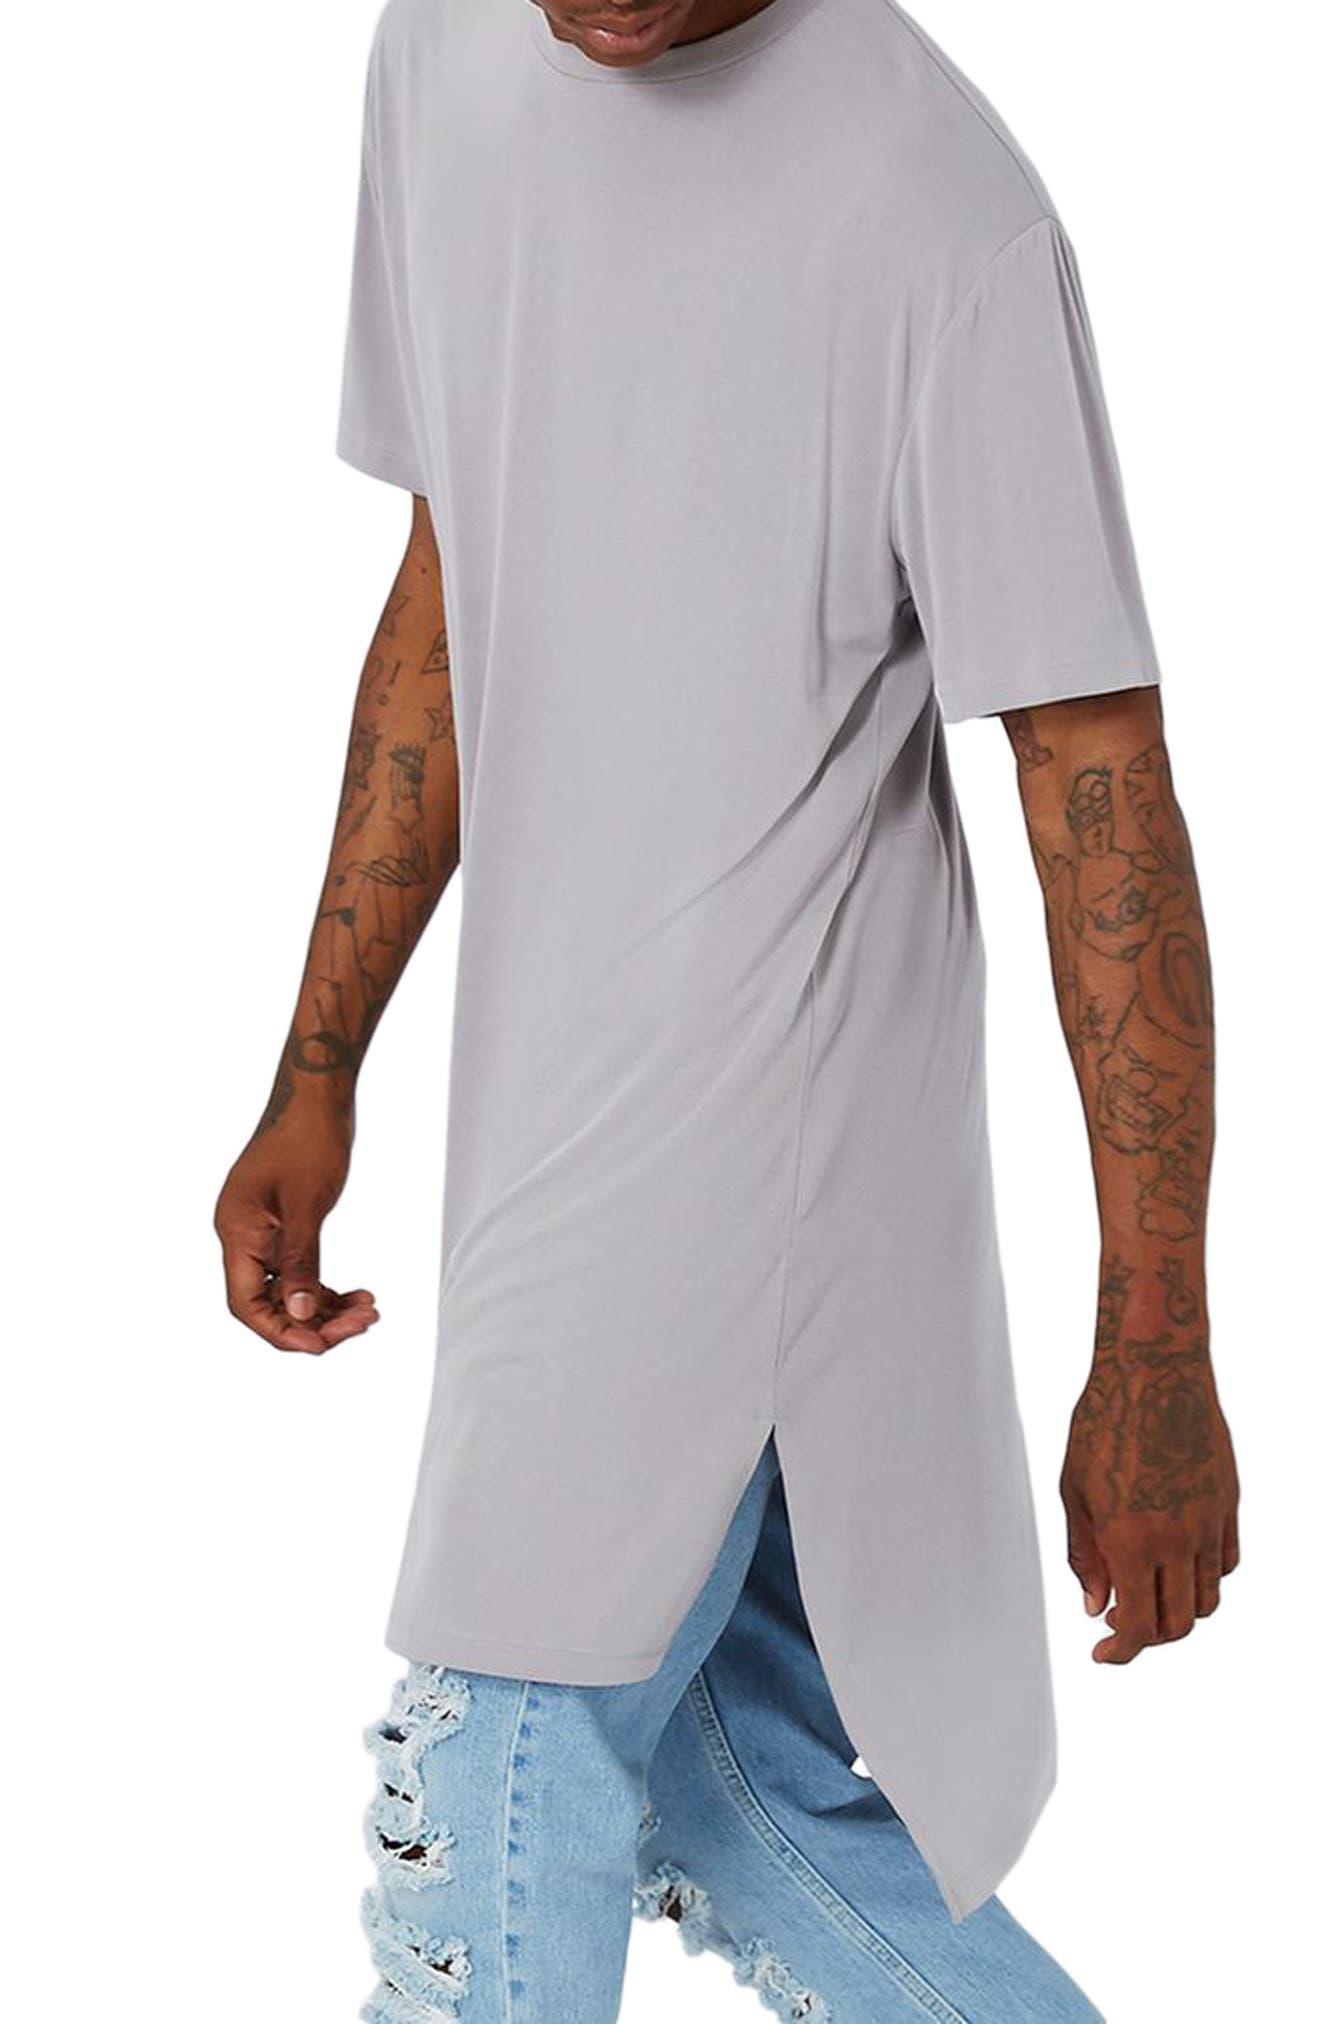 AAA Collection Longline T-Shirt,                             Main thumbnail 1, color,                             020